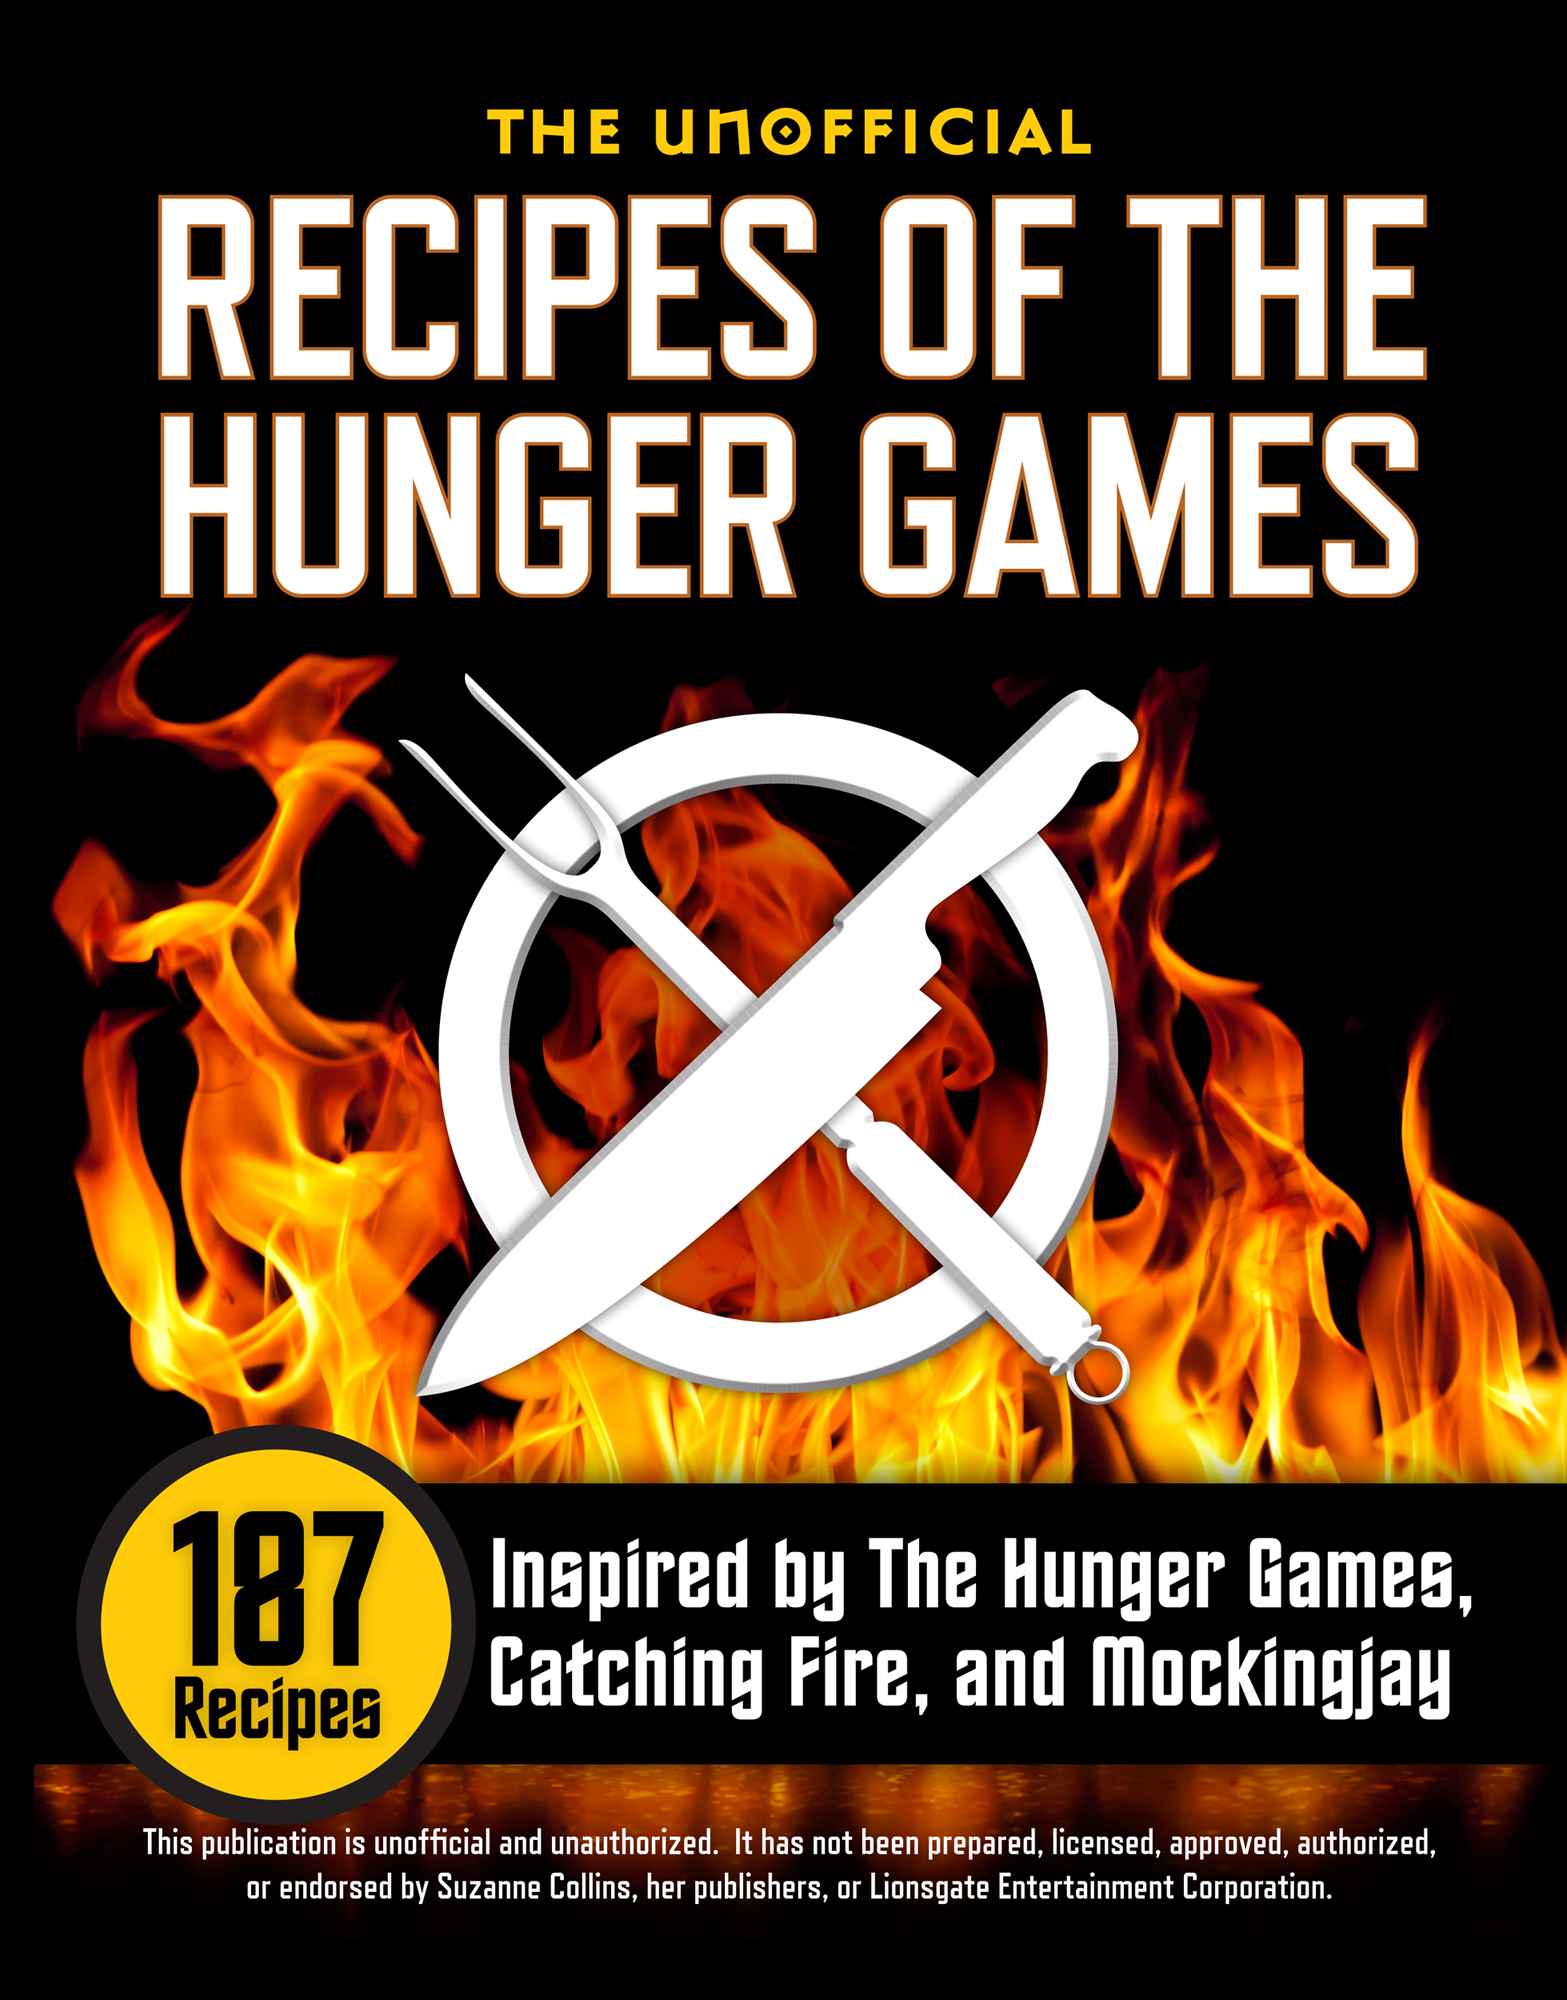 The Unofficial Recipes of The Hunger Games By: Rockridge University Press